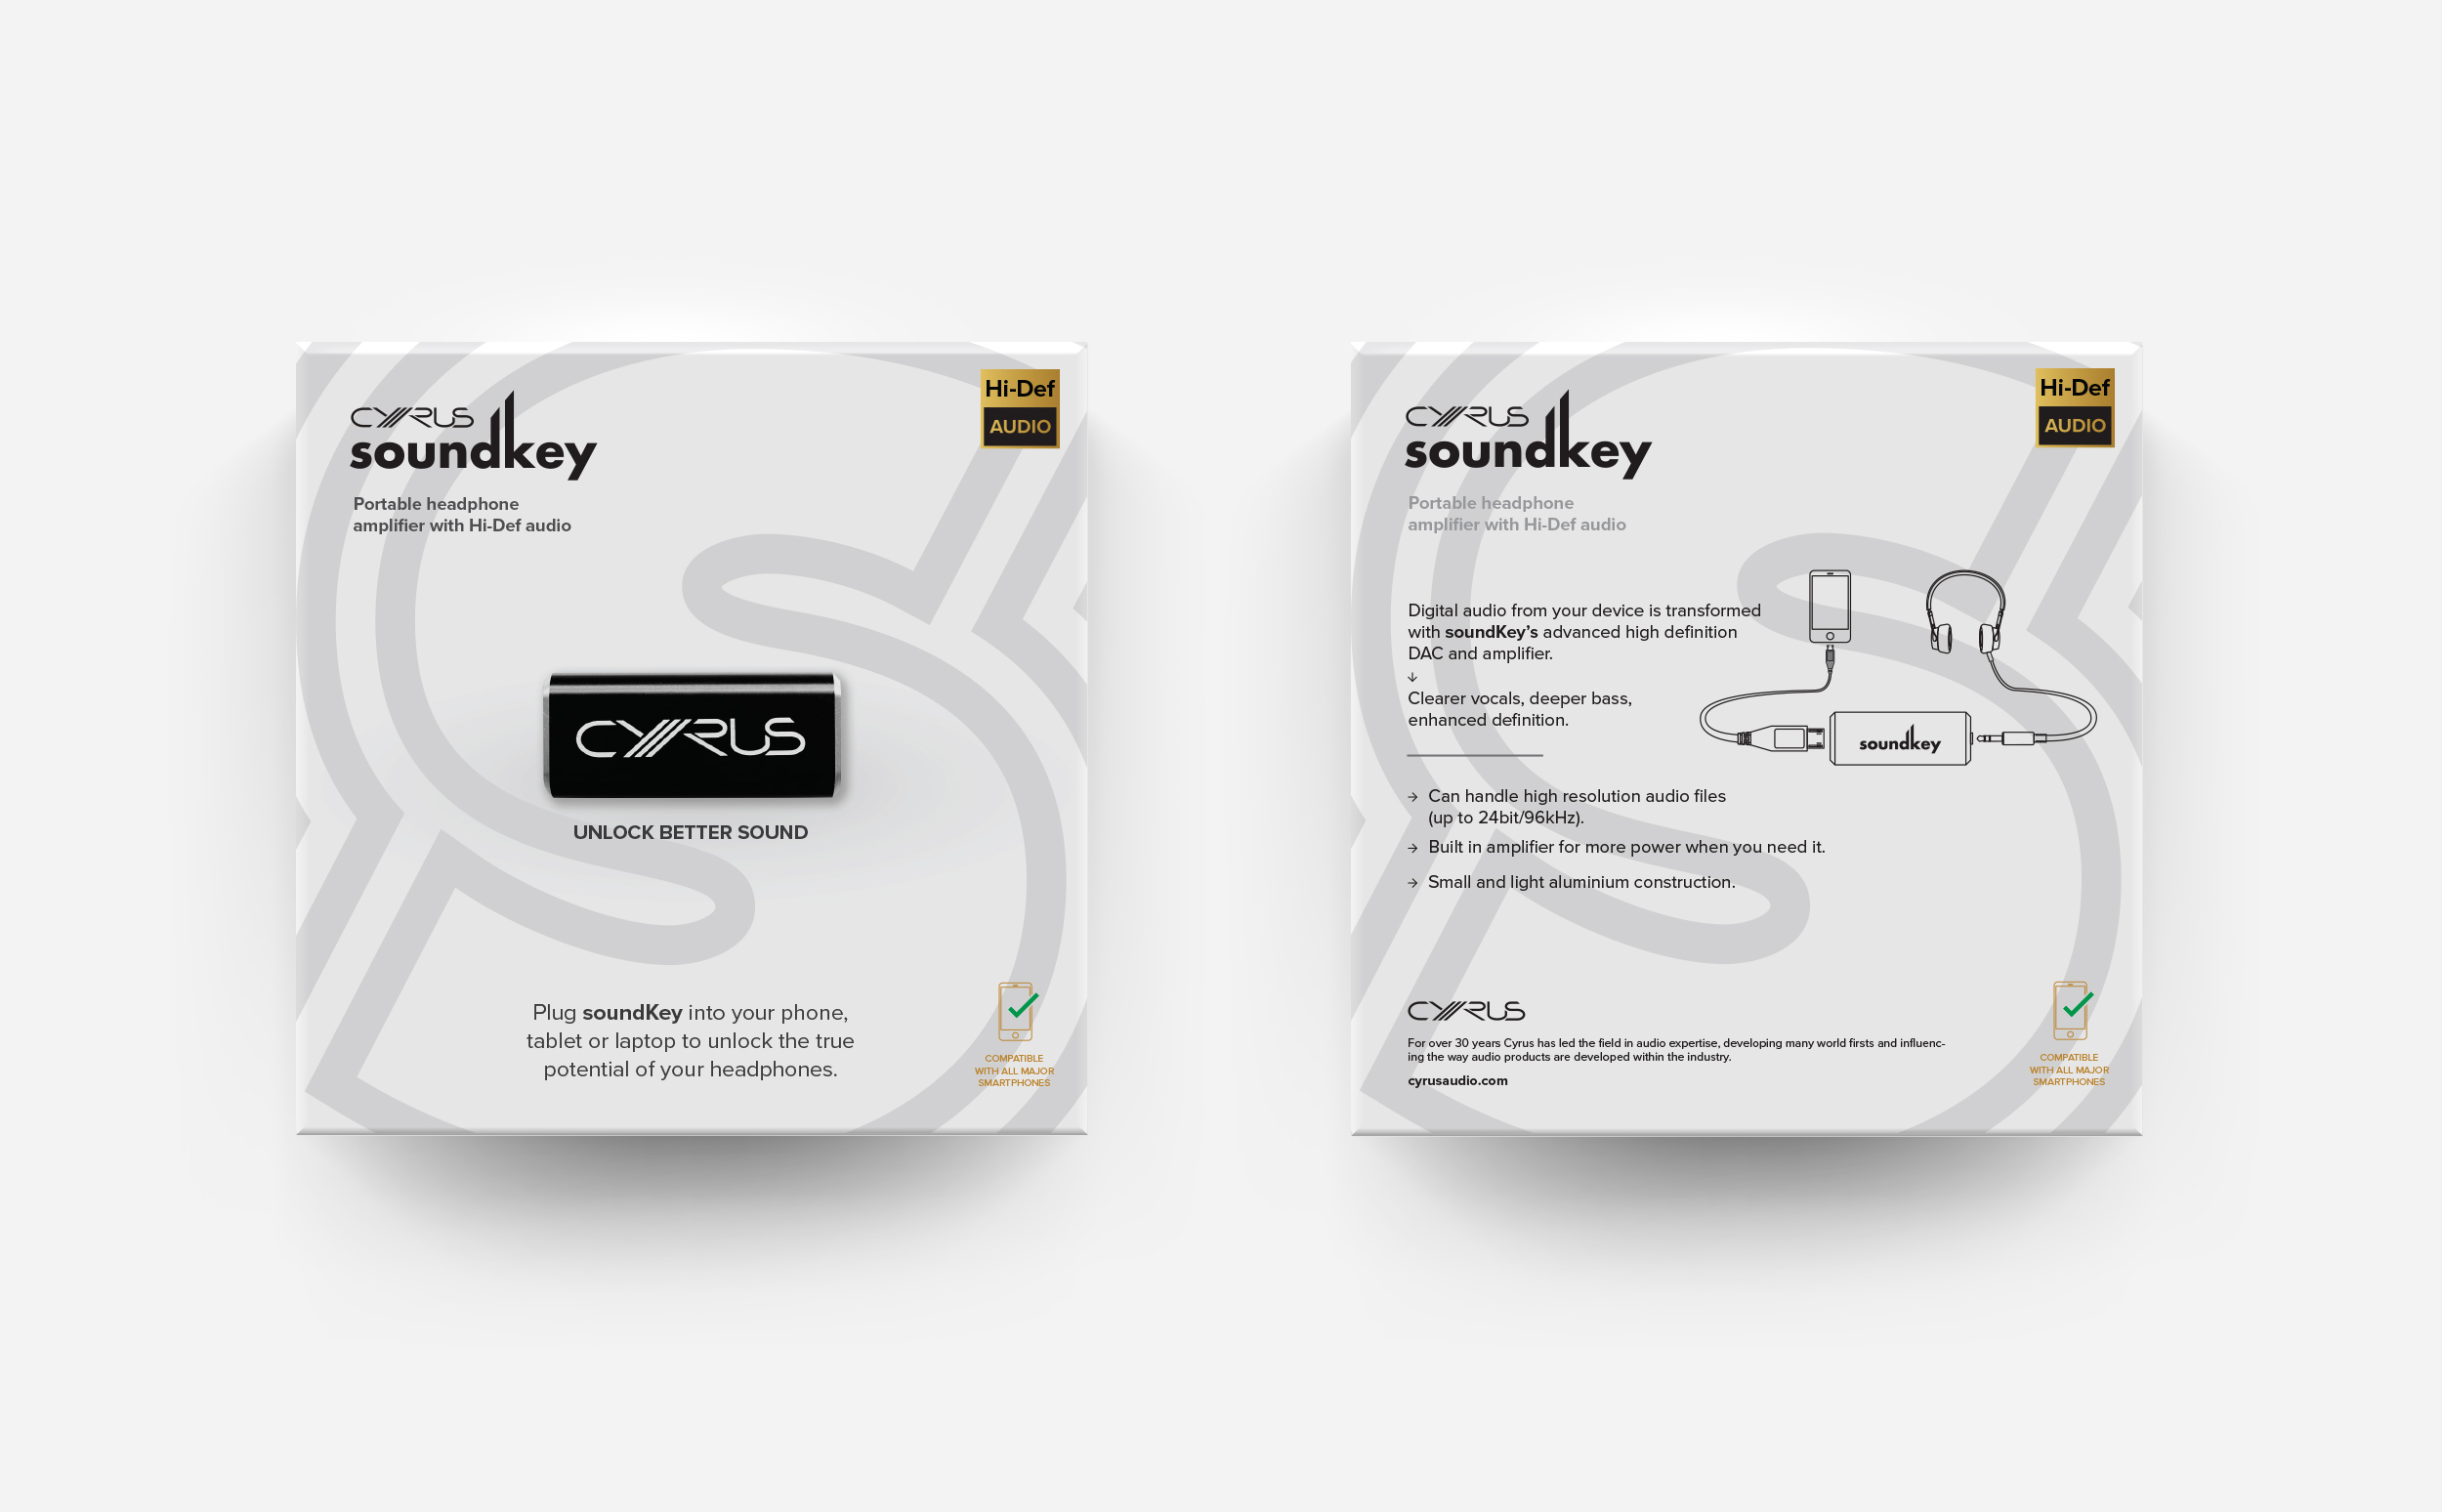 Cyrus_Soundkey_Packaging_designs